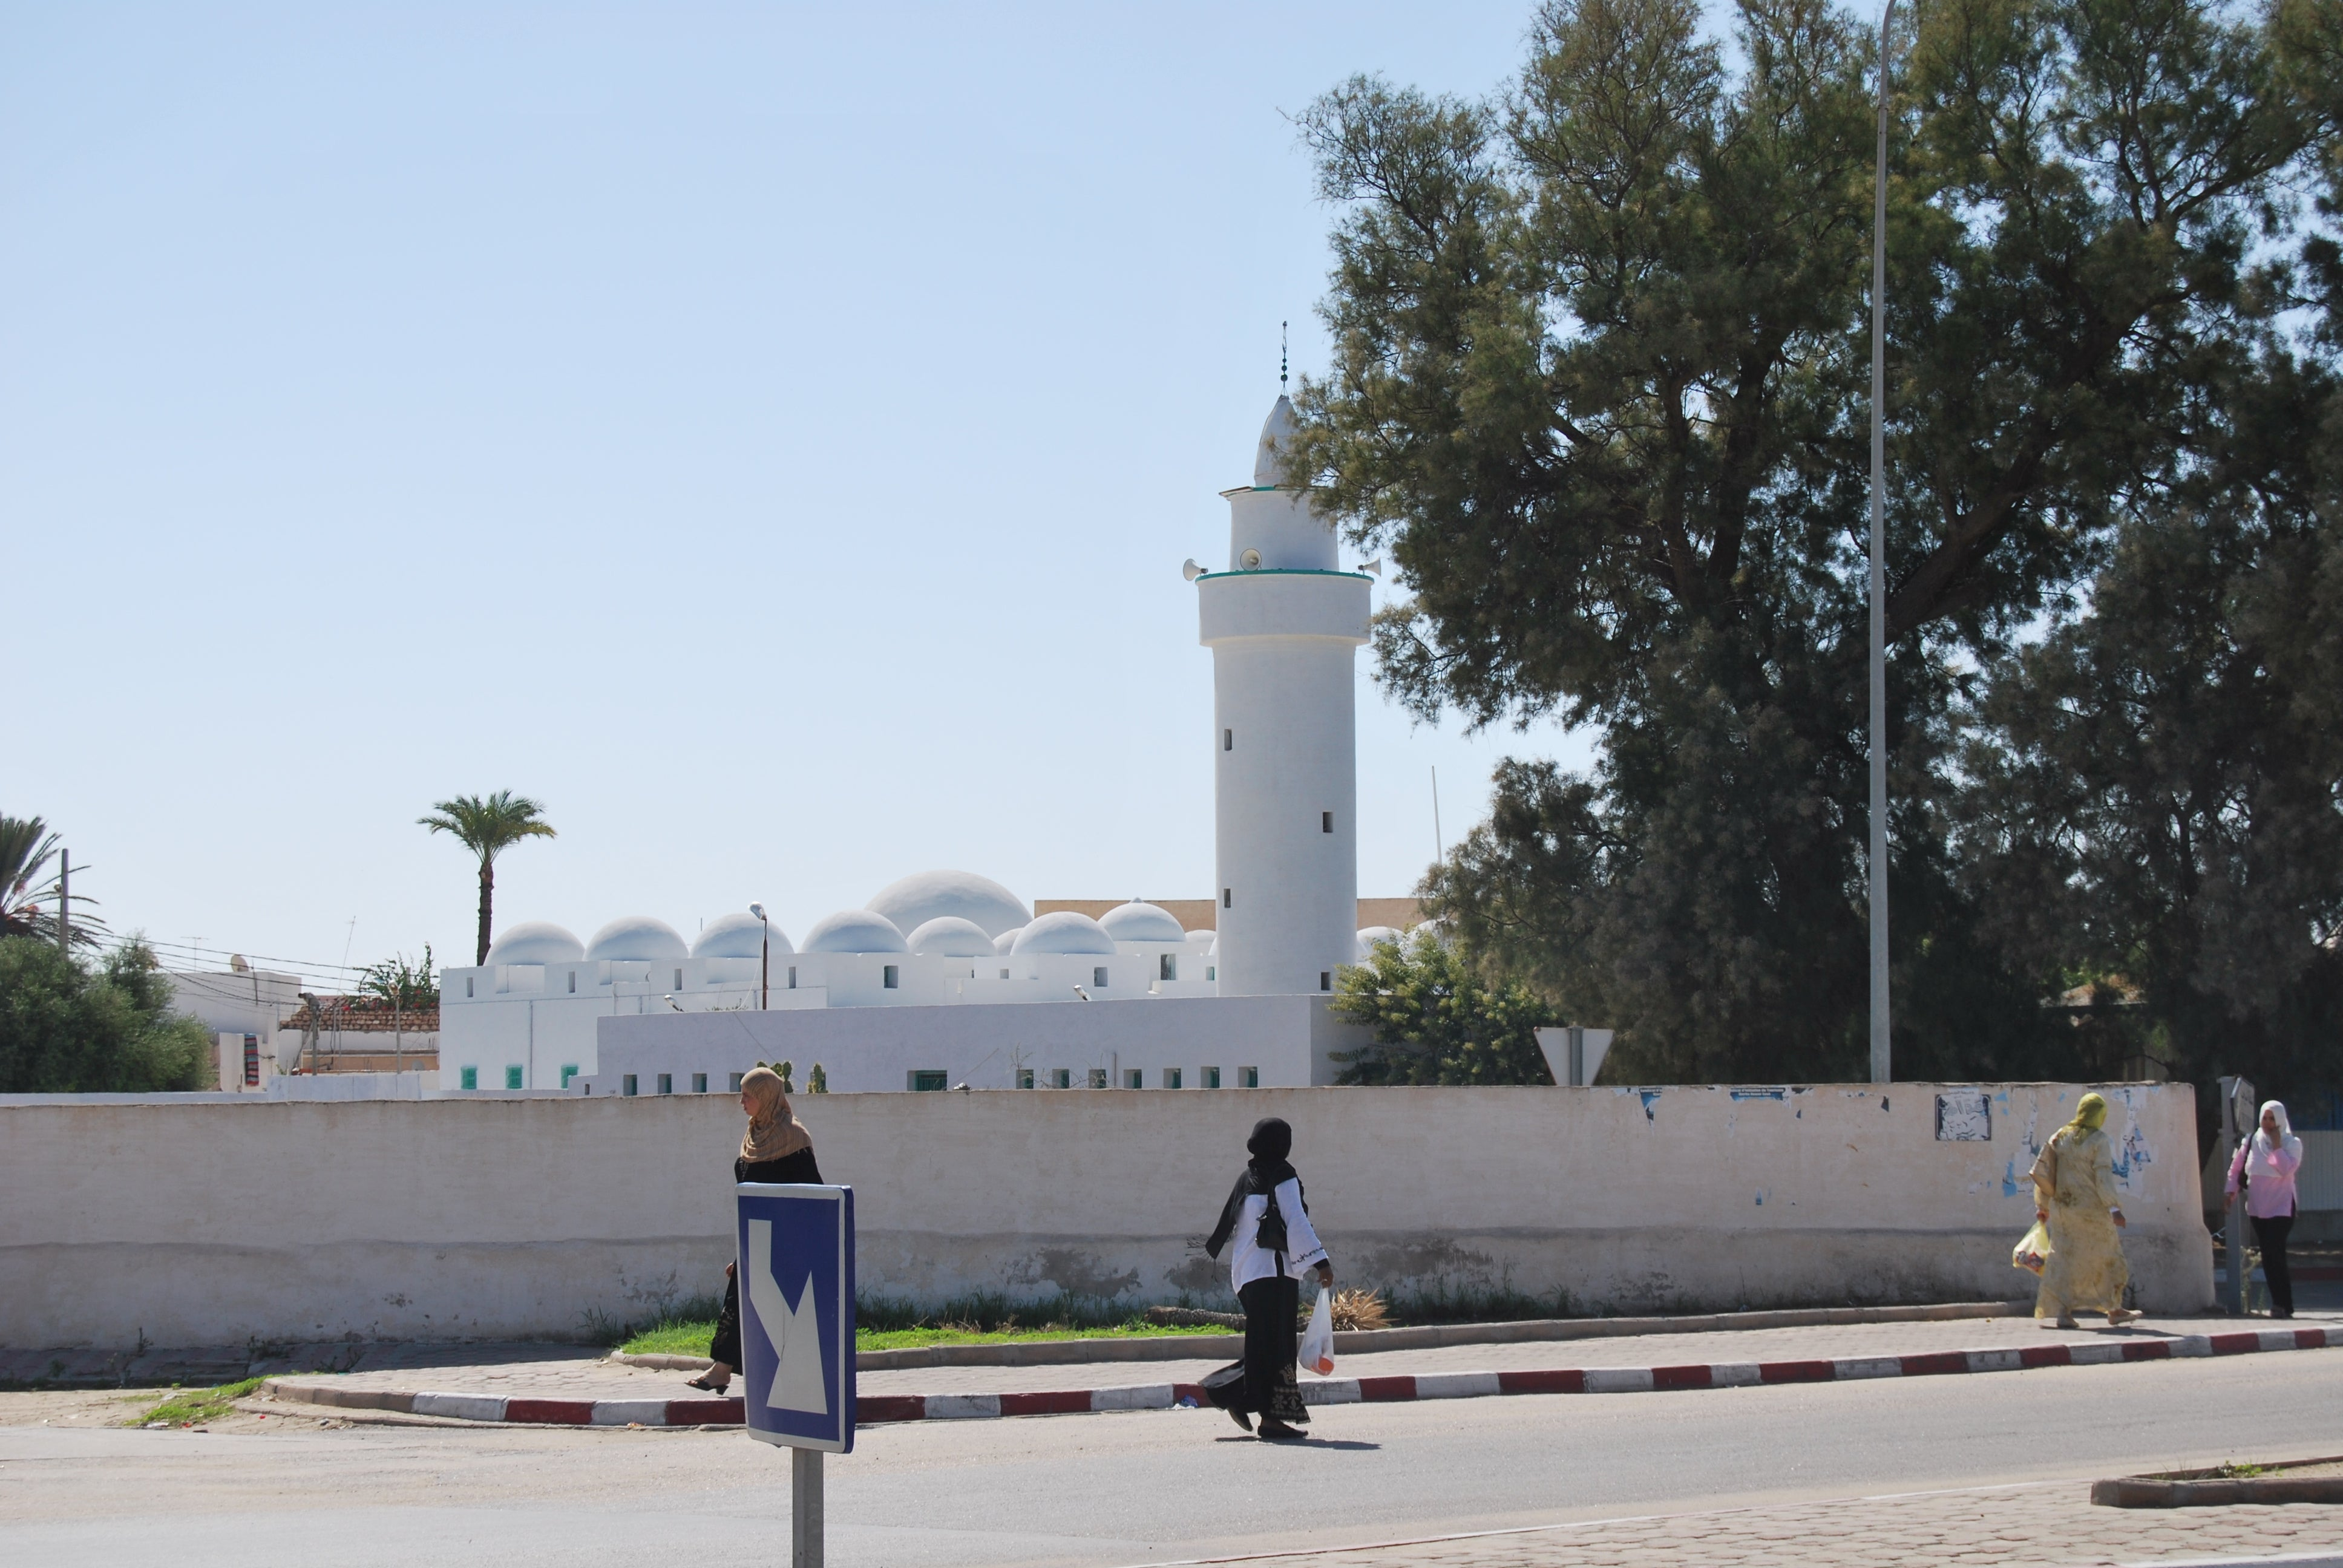 Tour of the Mosque